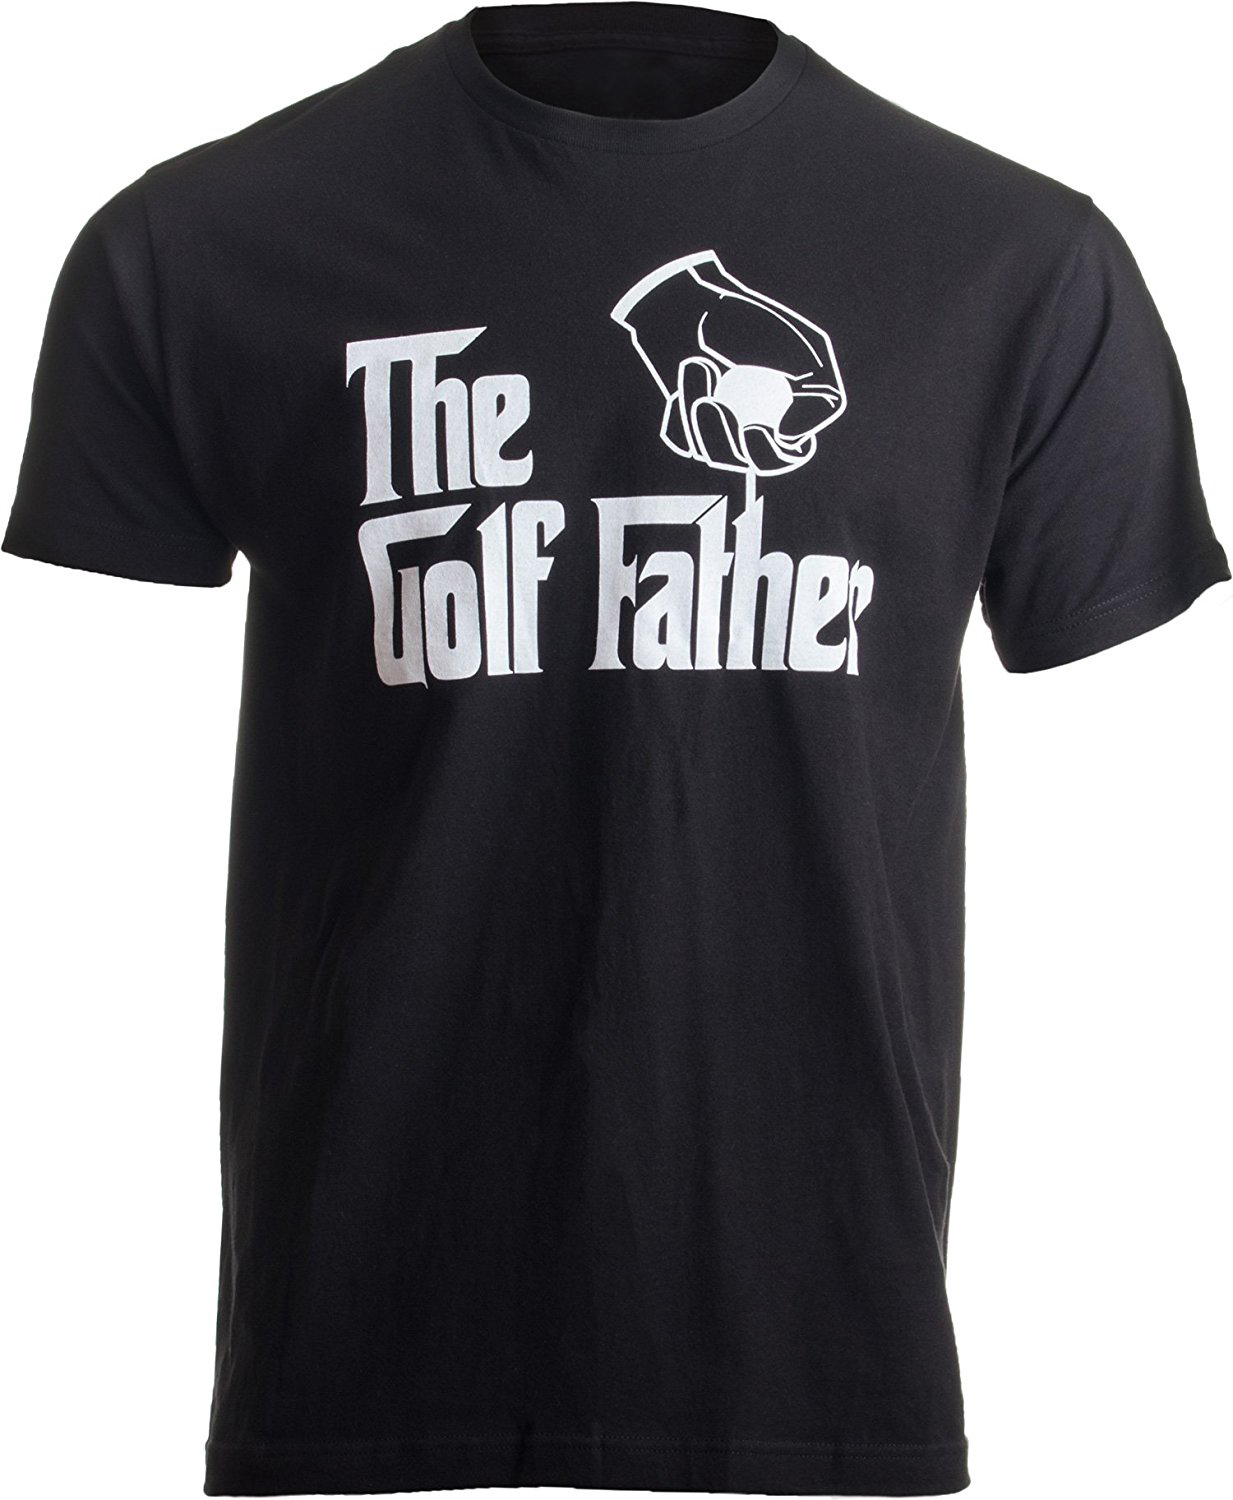 Arbor T-shirt Co. The Golfer Father  Funny Saying Golfing Shirt, Golfer Ball Humor For Men T-Shirt